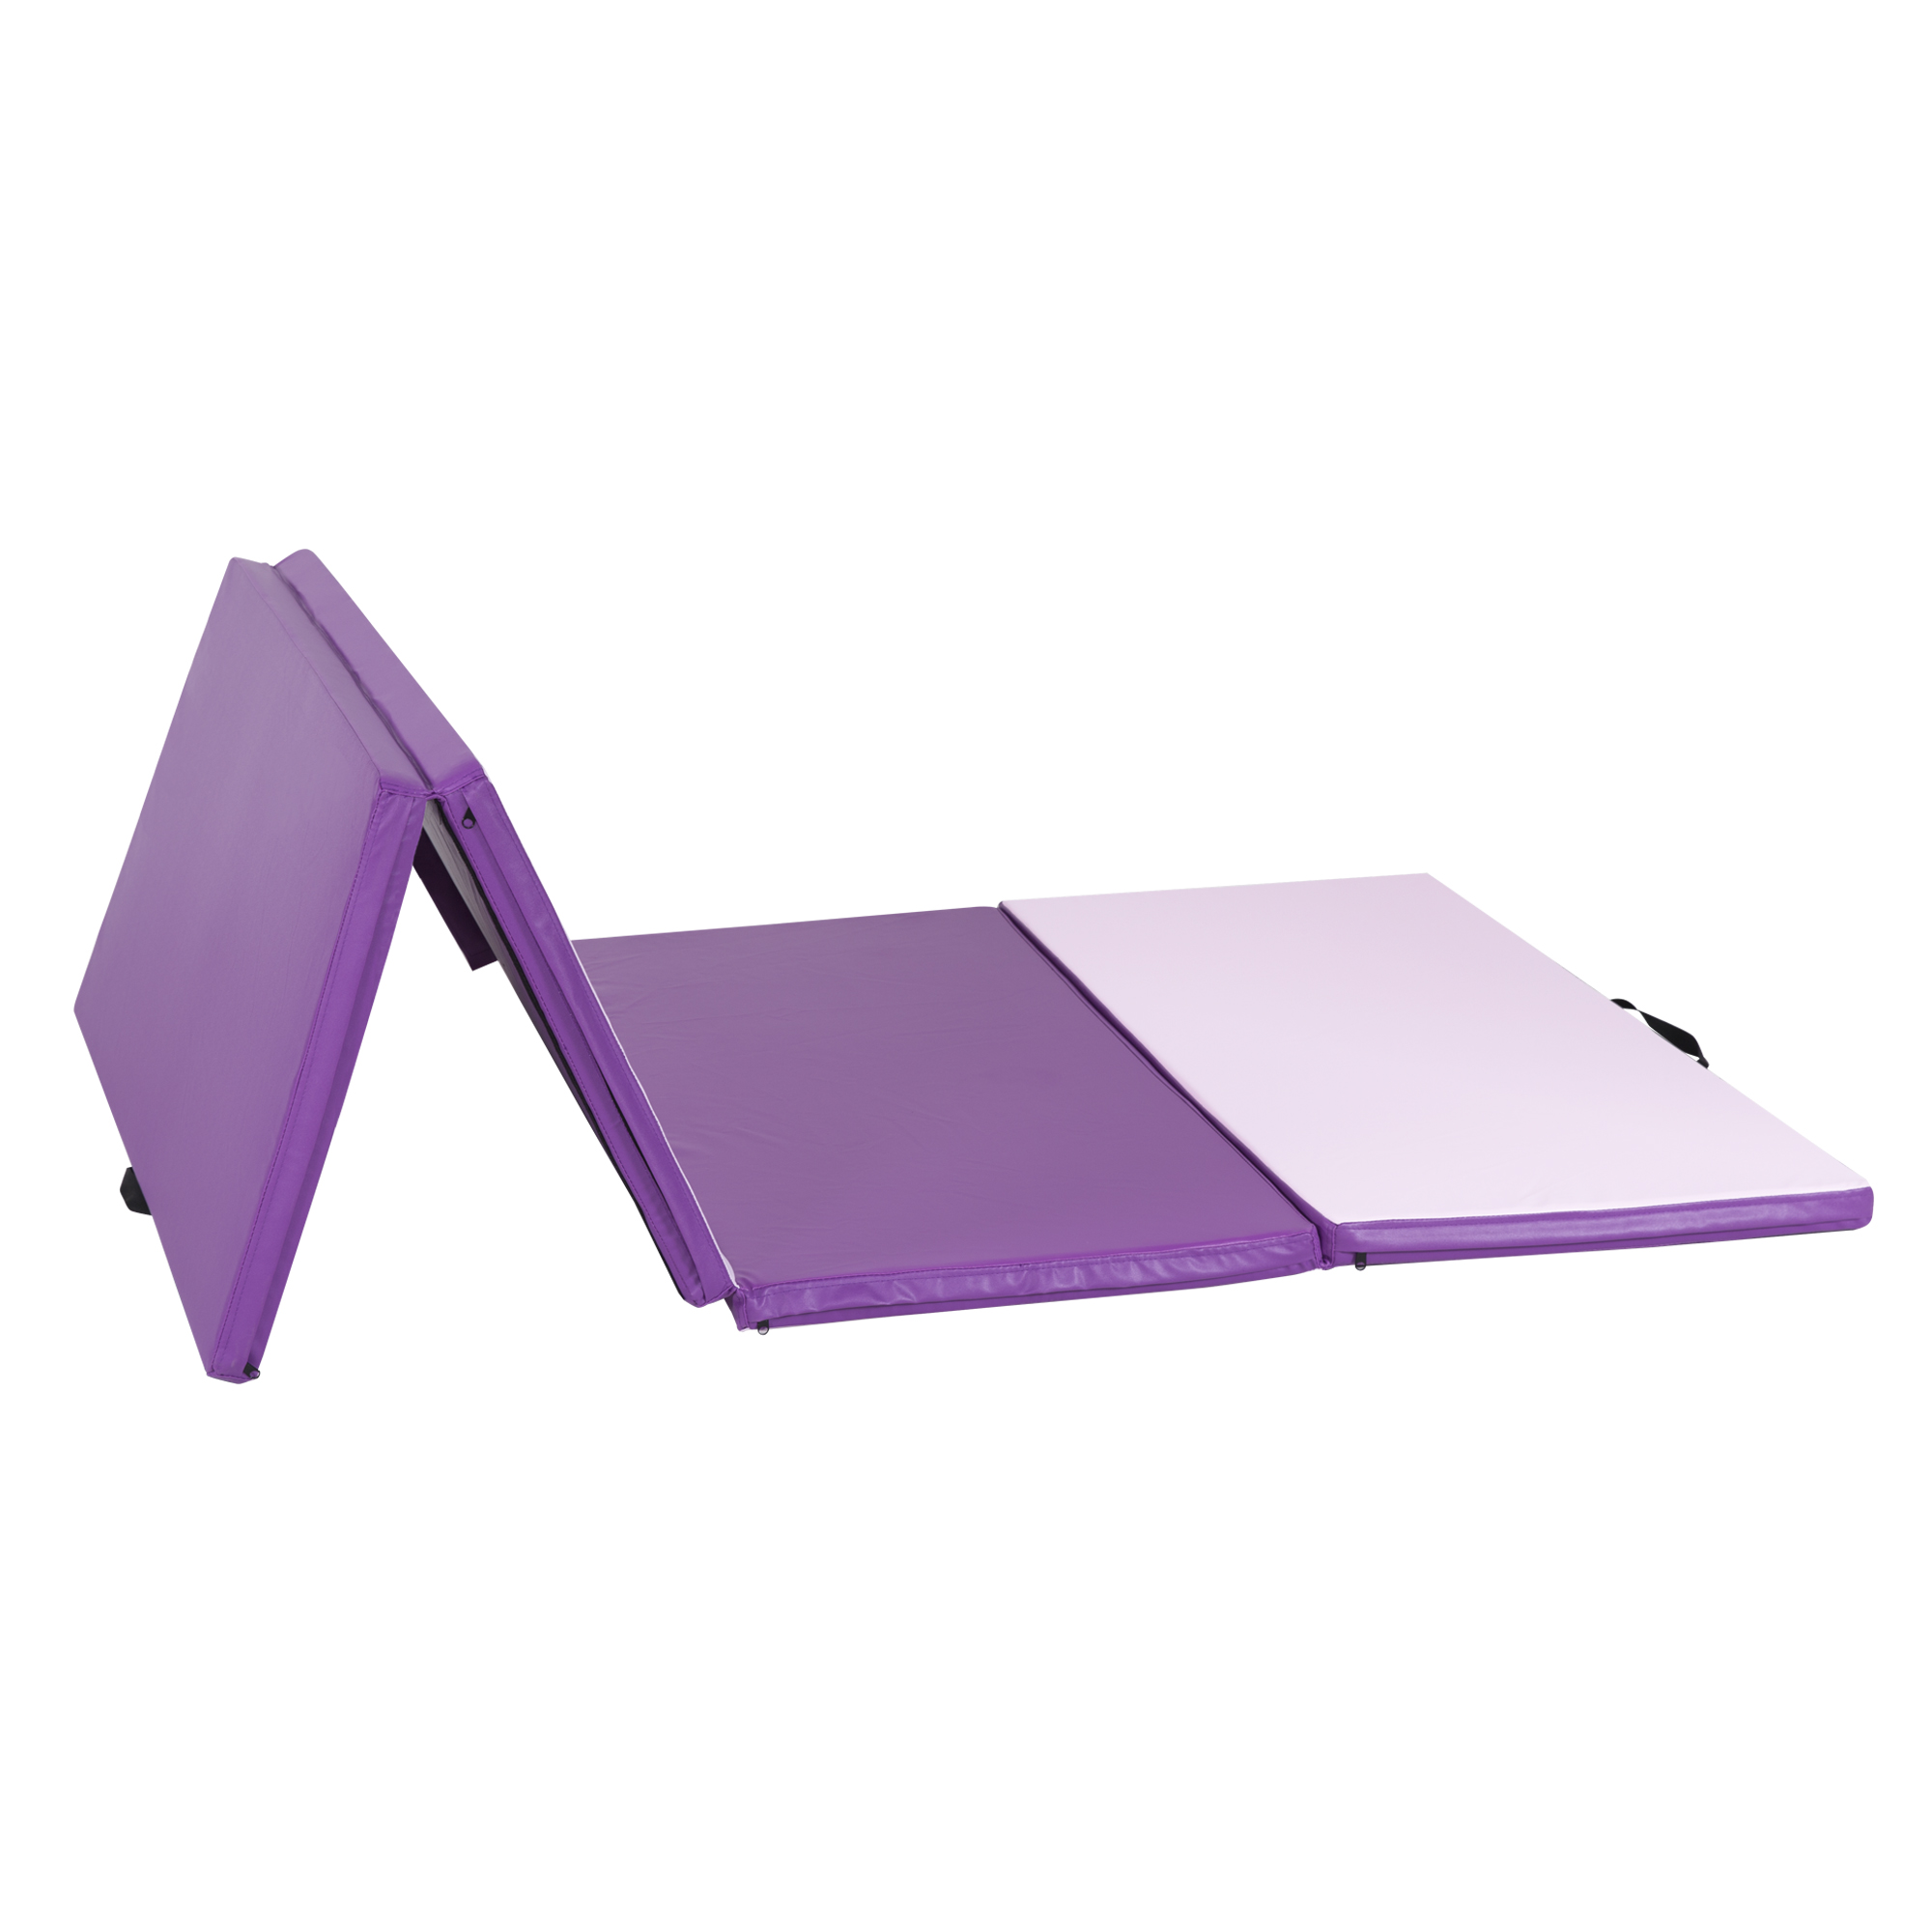 anti standing fatigue kitchen non toxic waterproof mat mats gymnastic products china supplier